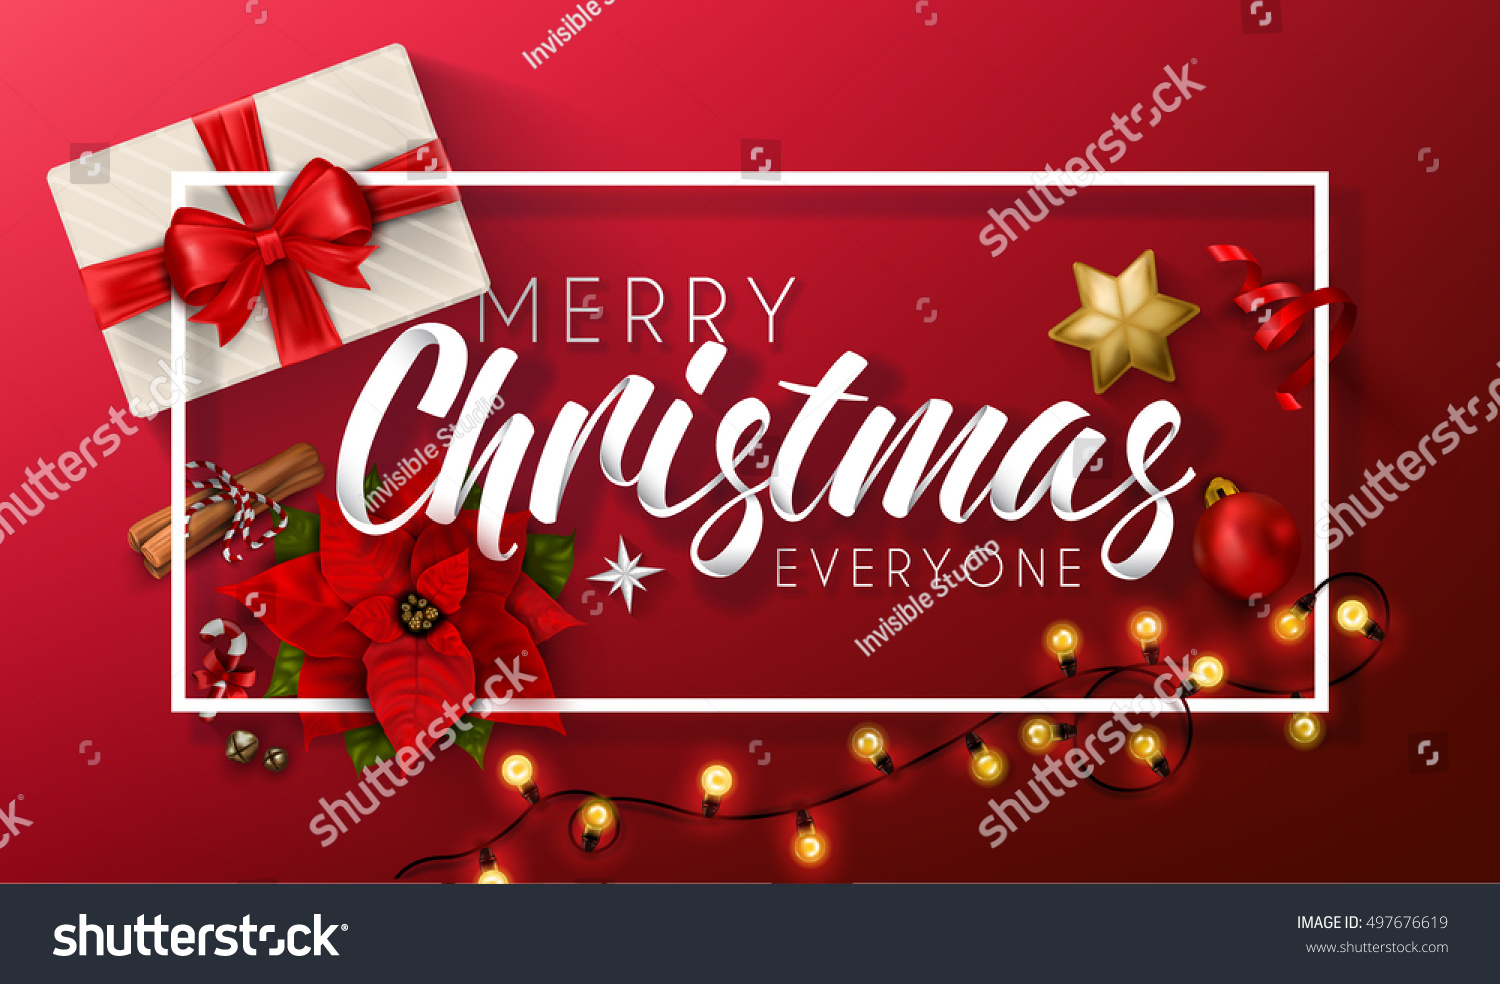 christmas images for text messages